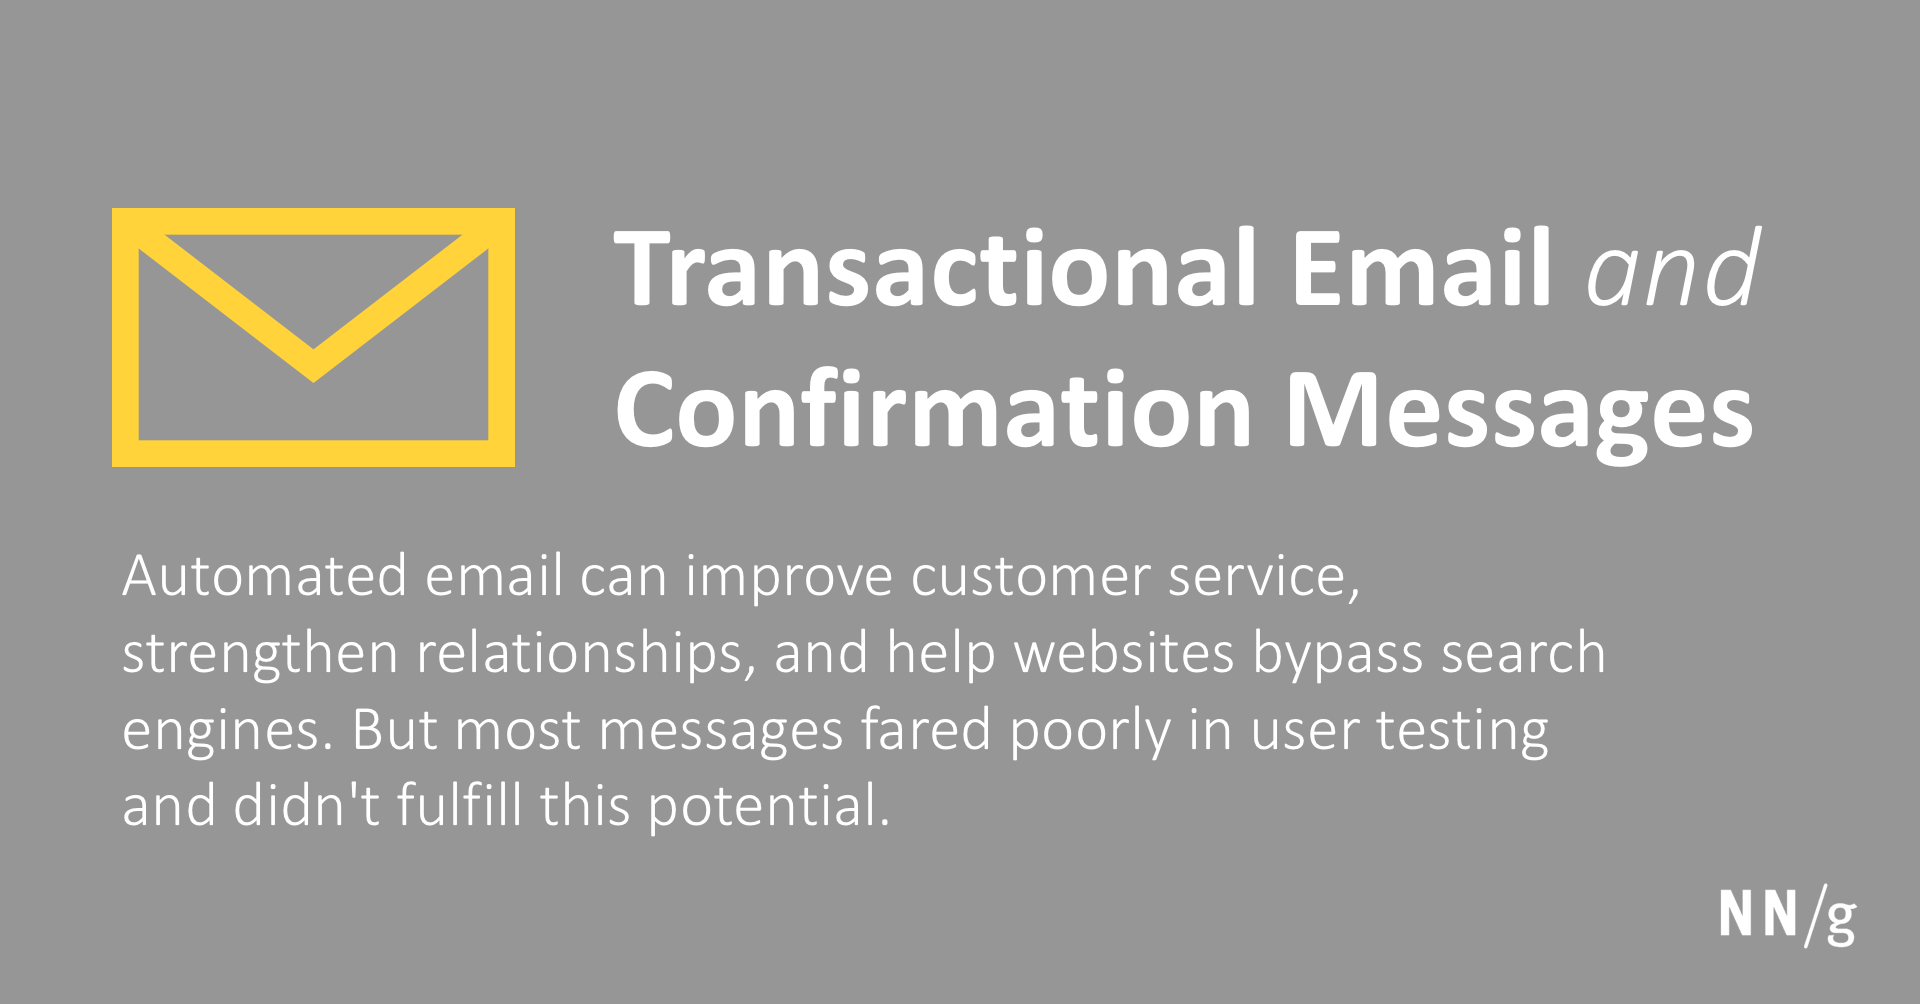 Transactional Email And Confirmation Messages